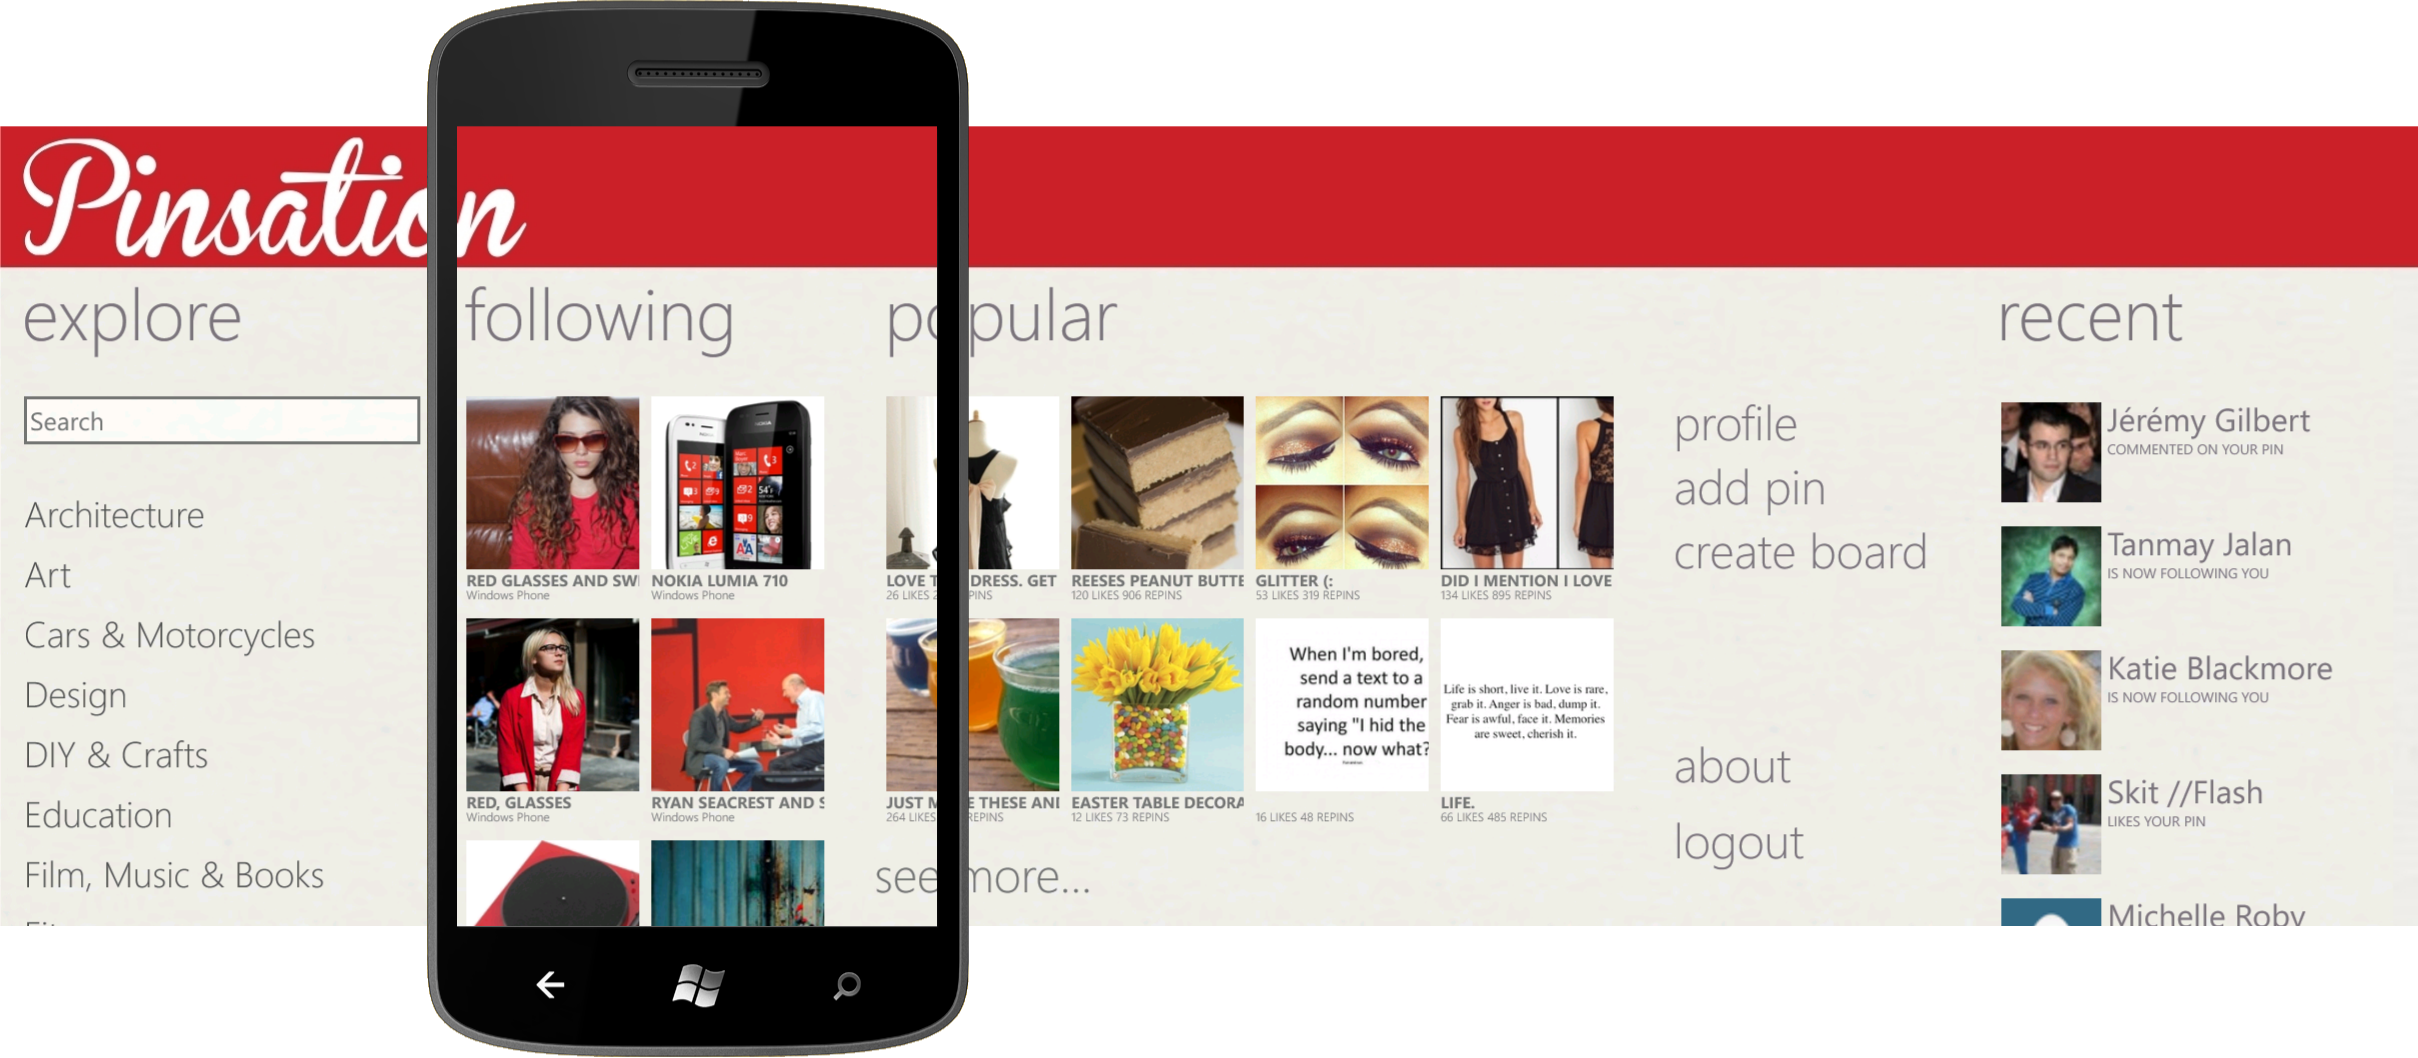 Pinsation is the premiere Pinterest app for Windows Phone